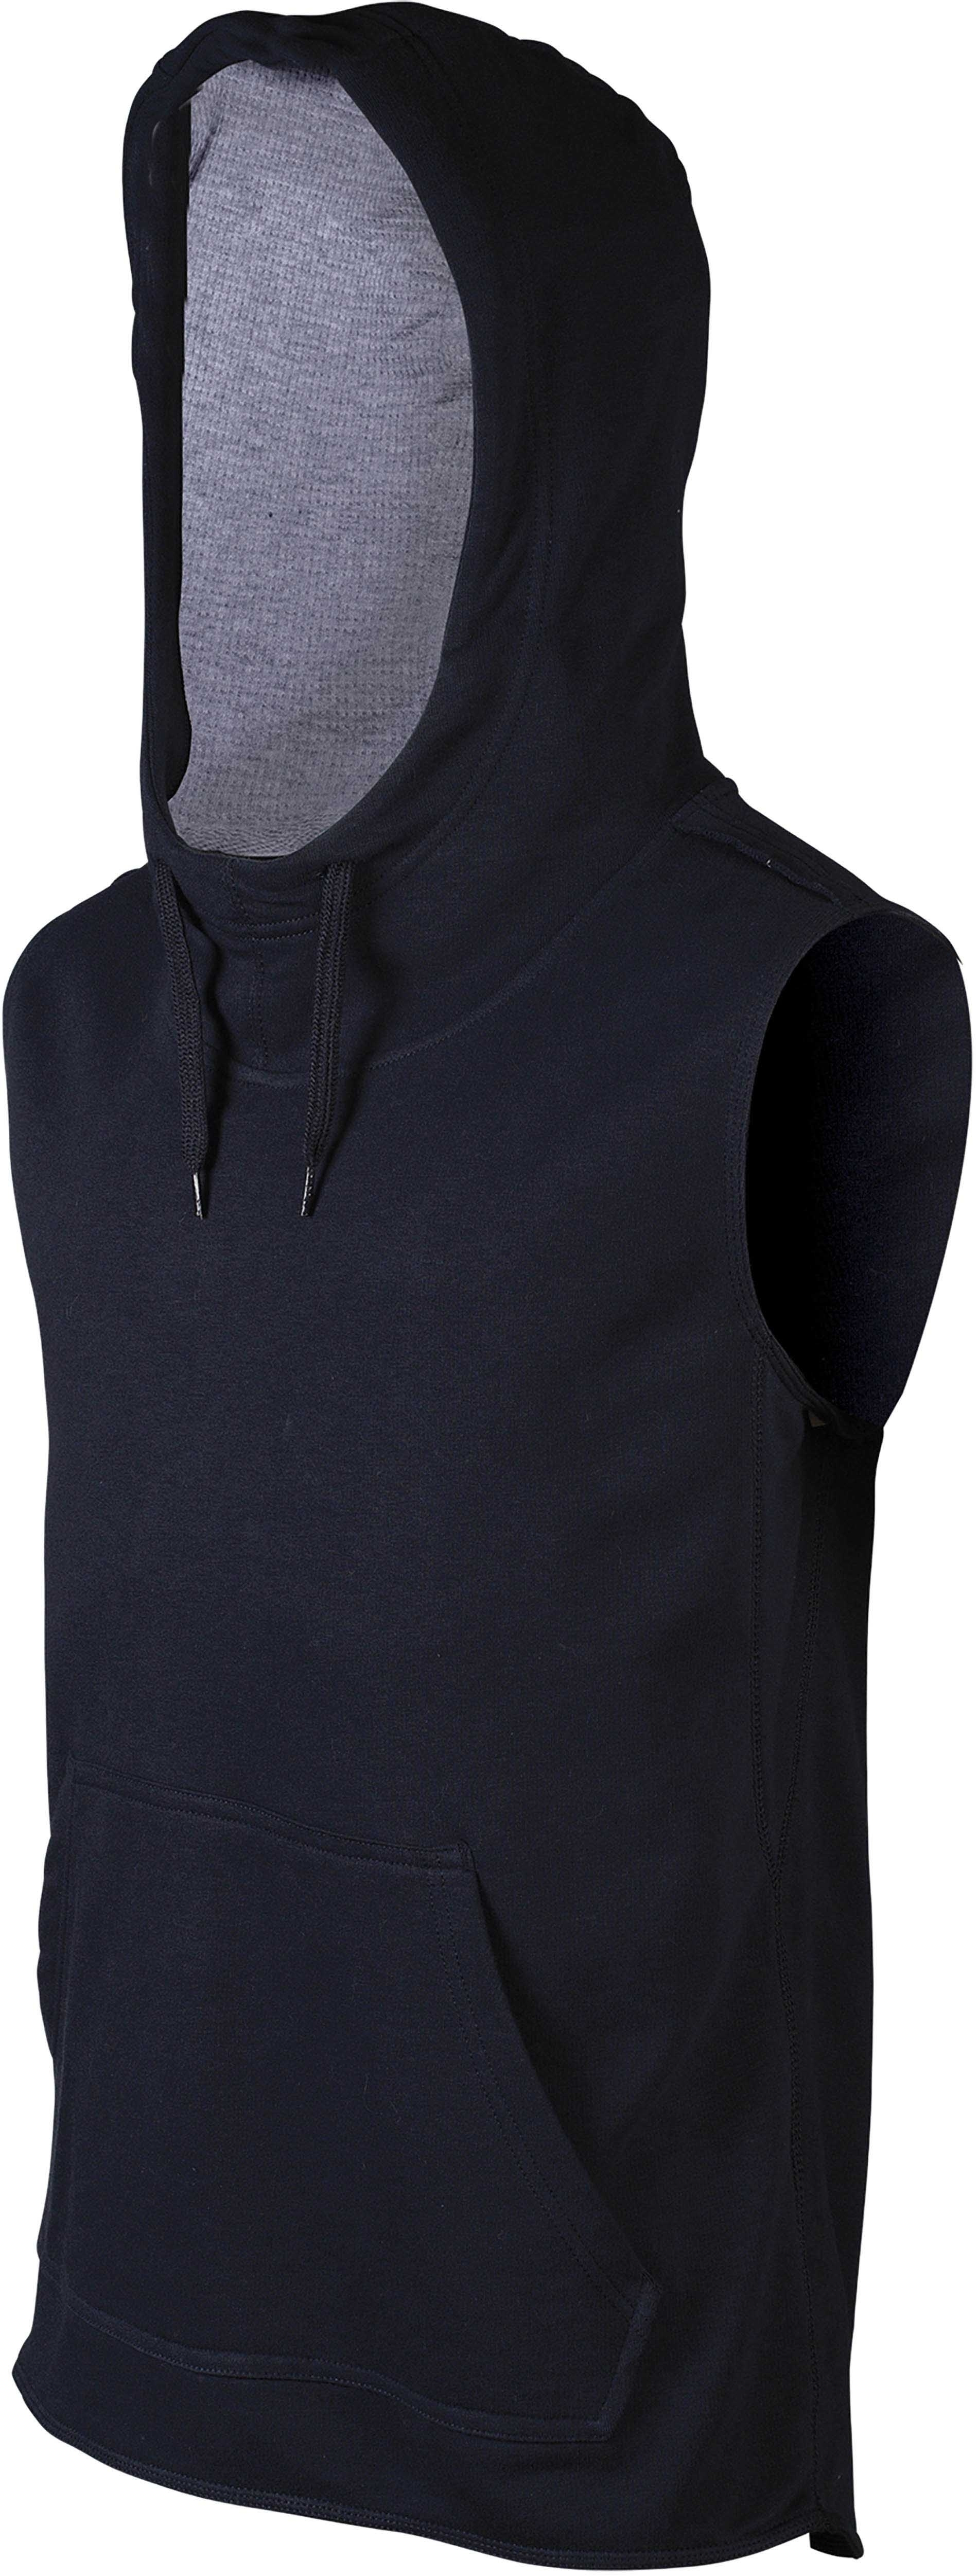 SWEAT-SHIRT CAPUCHE SANS MANCHES FRENCH TERRY Navy / Oxford Grey Bleu